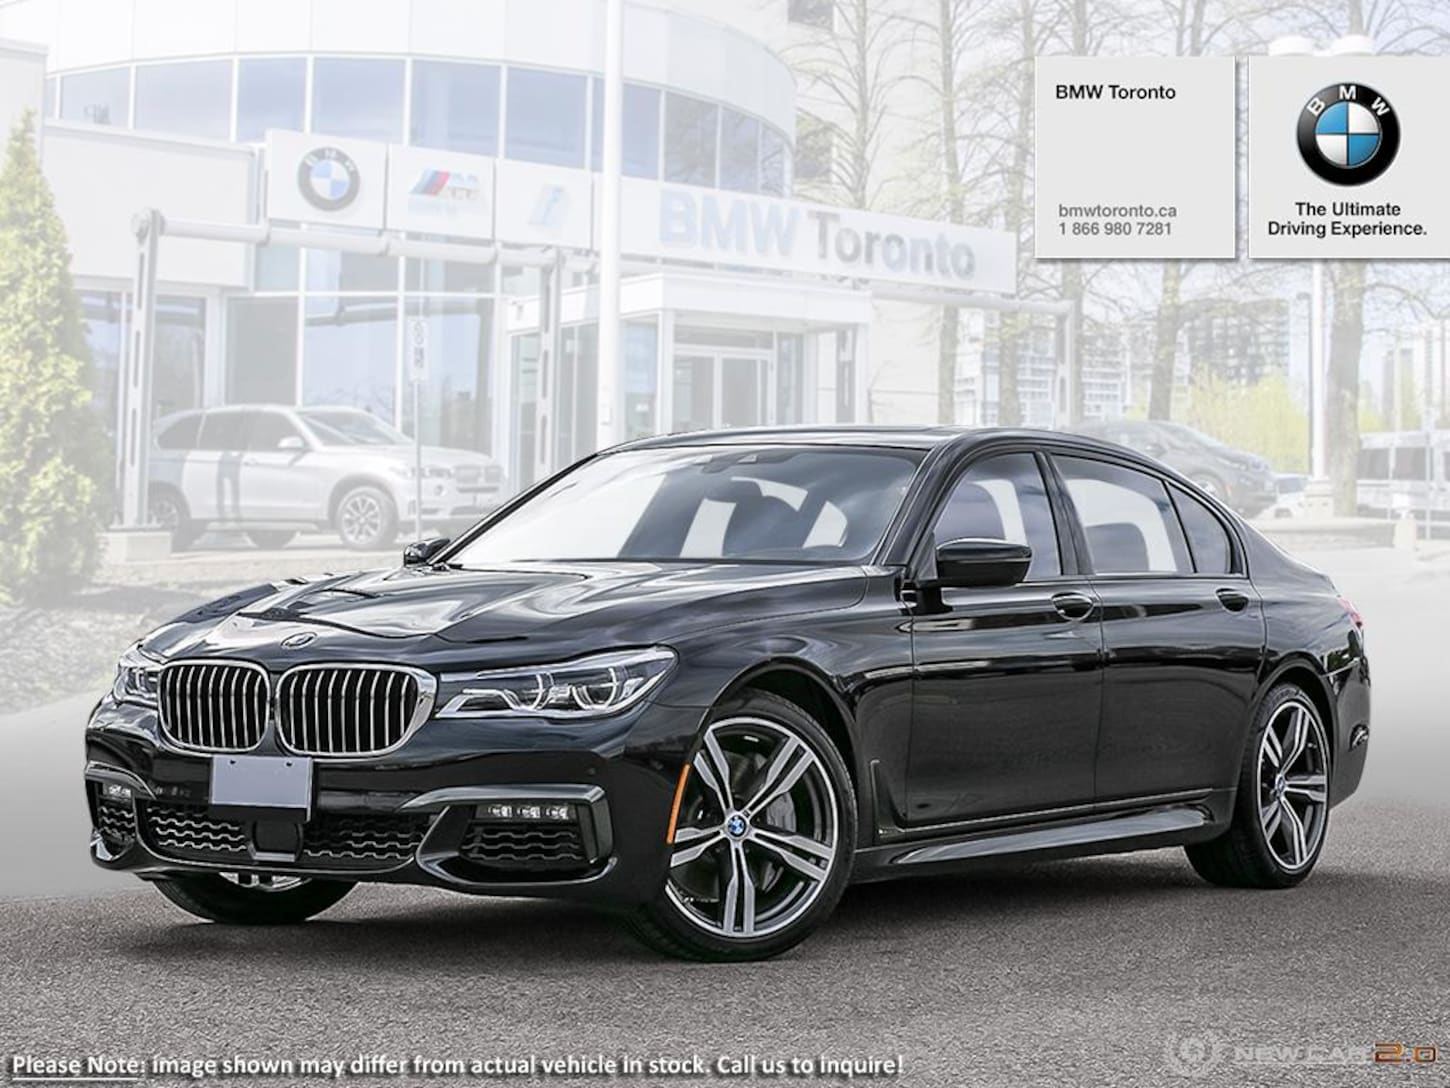 48 The 2019 BMW 750Li Xdrive Wallpaper